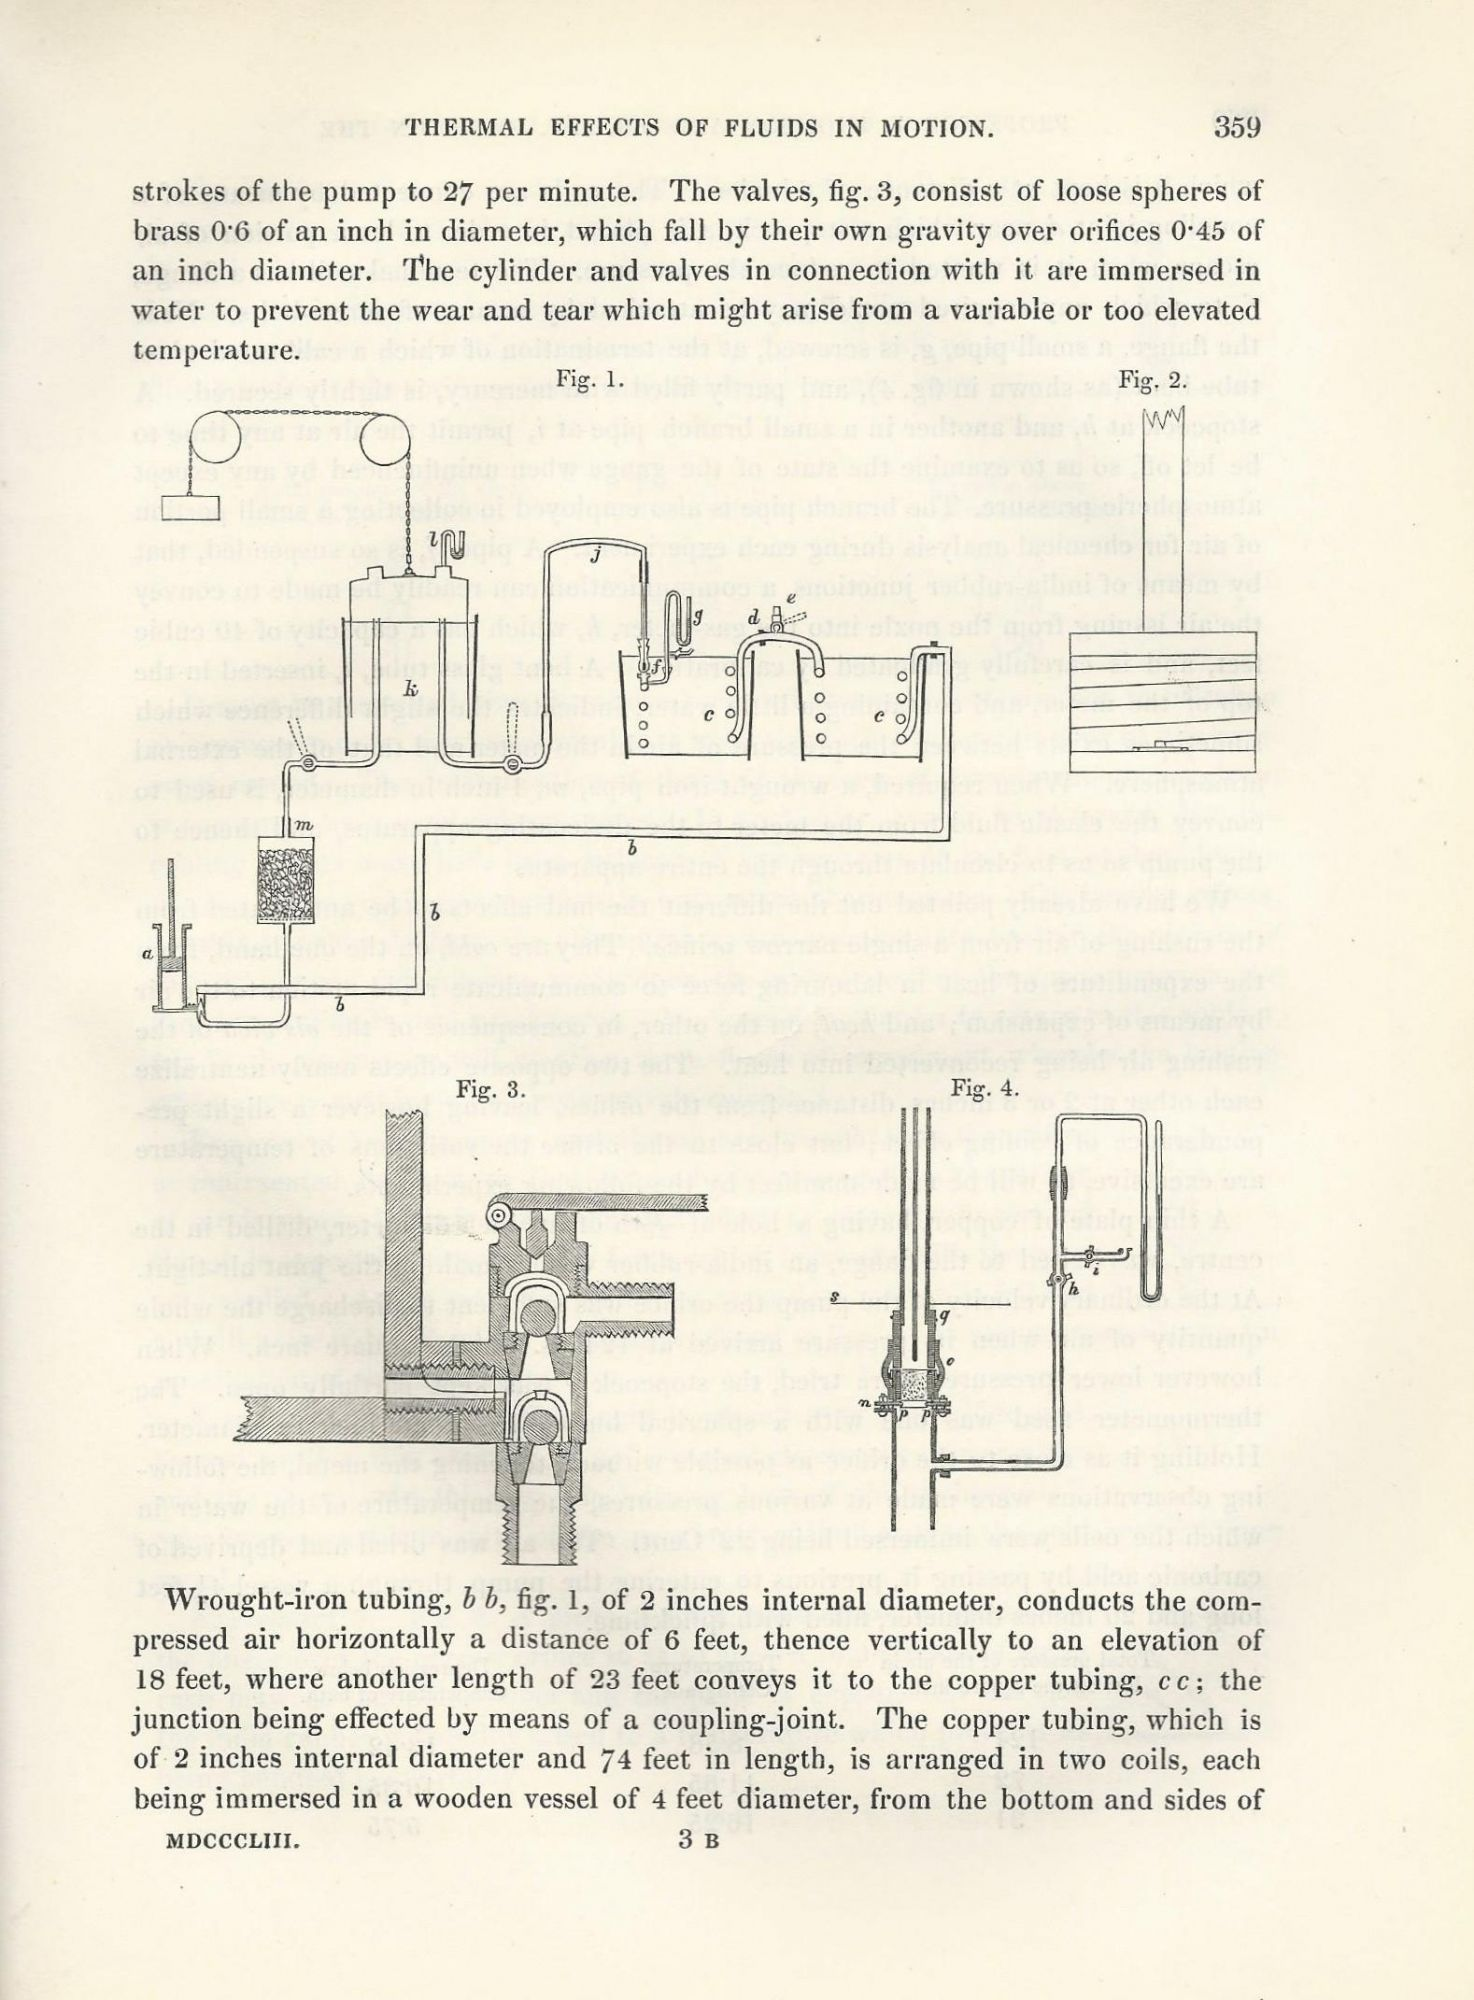 JOULE-THOMSON EFFECT: On the Thermal Effects of Fluids in Motion  Philosophical Transactions of the Royal Society of London, Vol  143 for the  Year 1853